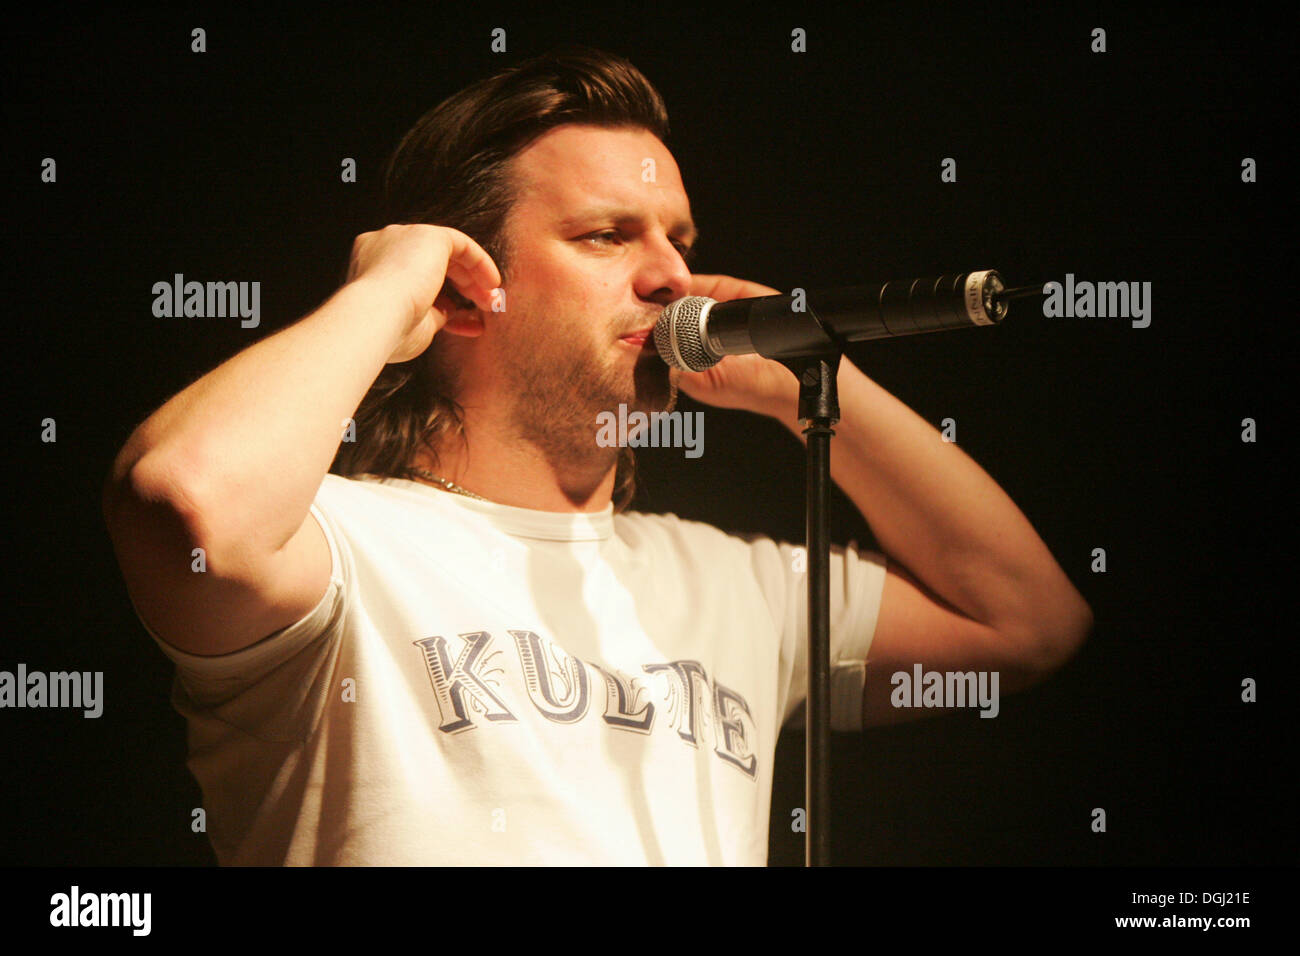 Henning Wehland, singer and frontman of the German rock band